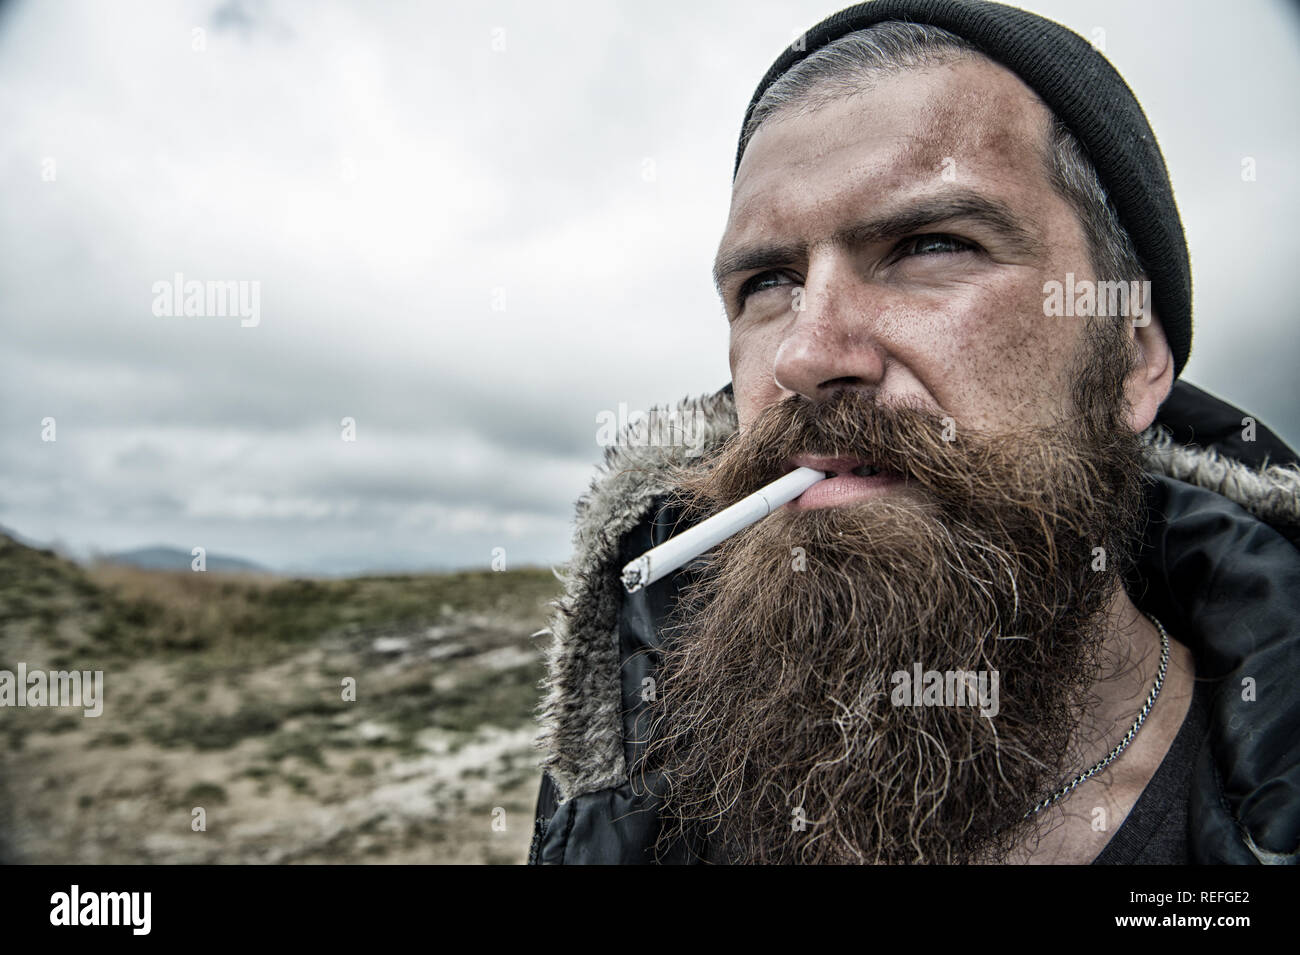 Man with long beard and mustache smoking cigaret. Brutality concept. Hipster on strict face with beard looks brutally while hiking and smoking. Man with brutal bearded appearance, untidy and unshaven. - Stock Image